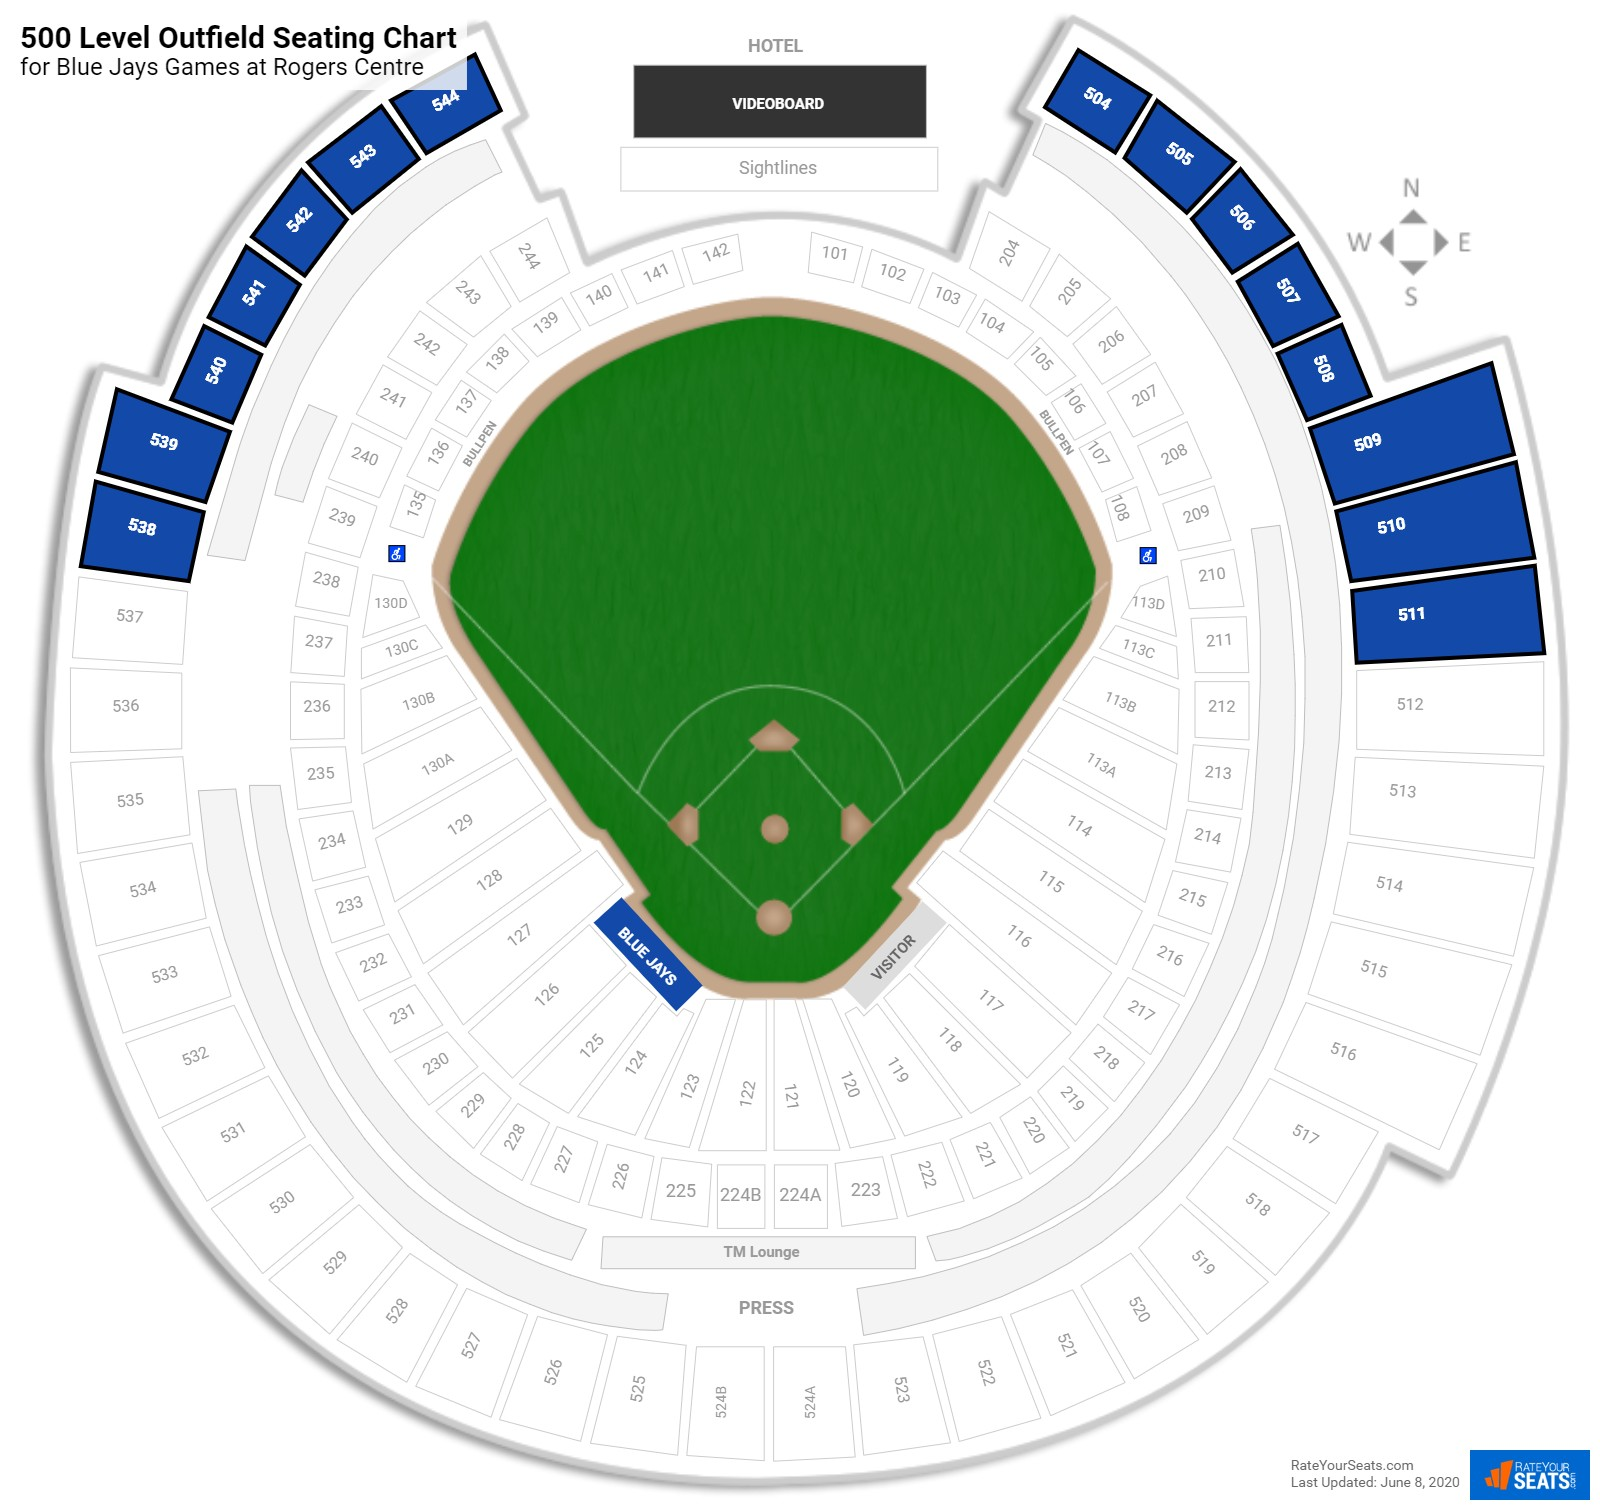 Rogers Centre 500 Level Outfield seating chart